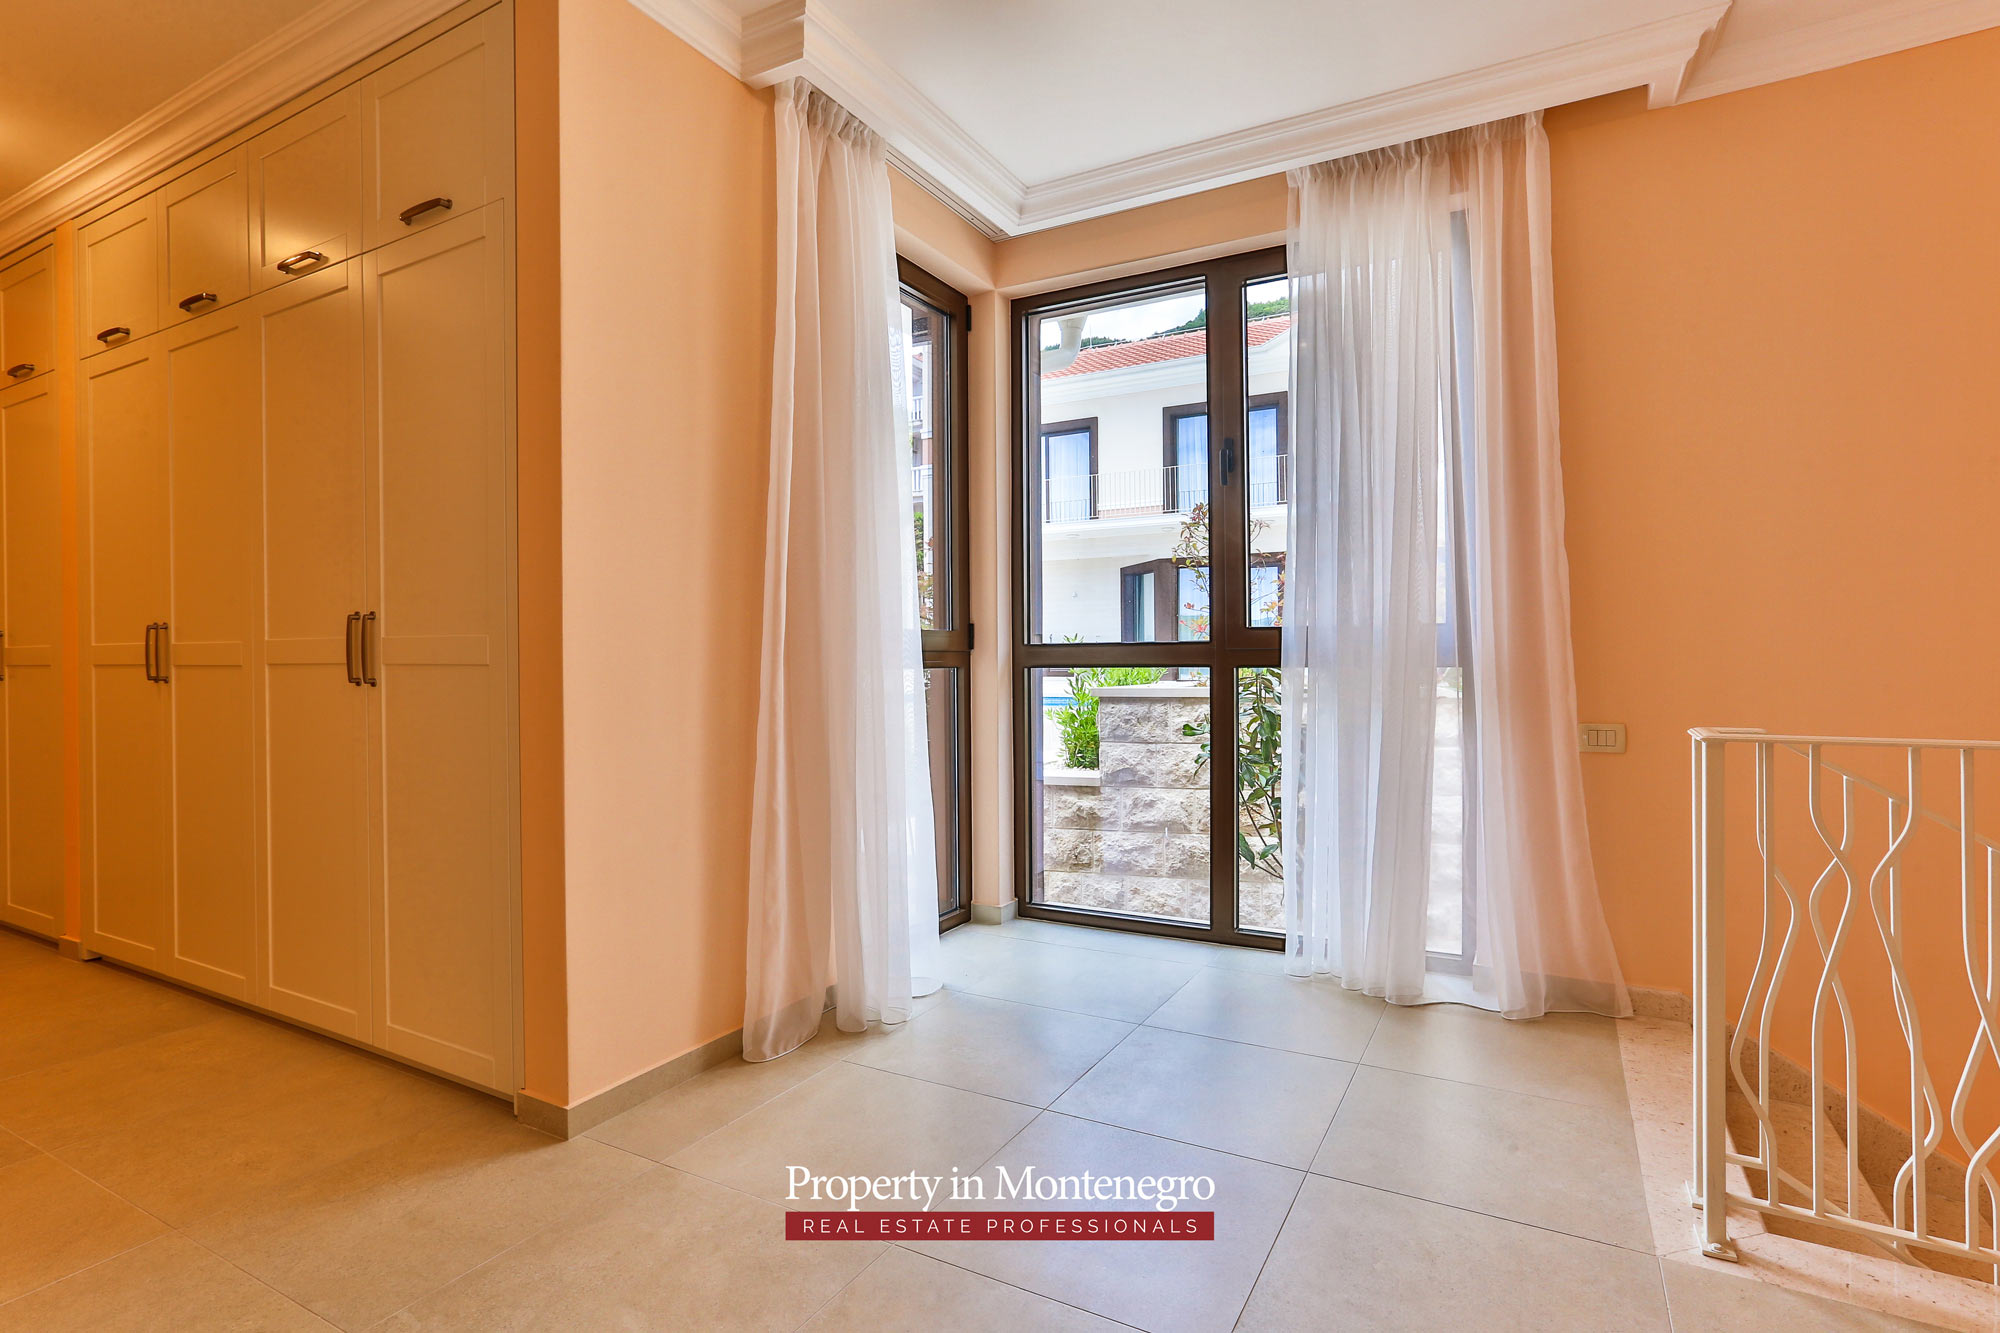 Luxury-villa-with-swimming-pool-for-sale-in-Tivat (10).jpg